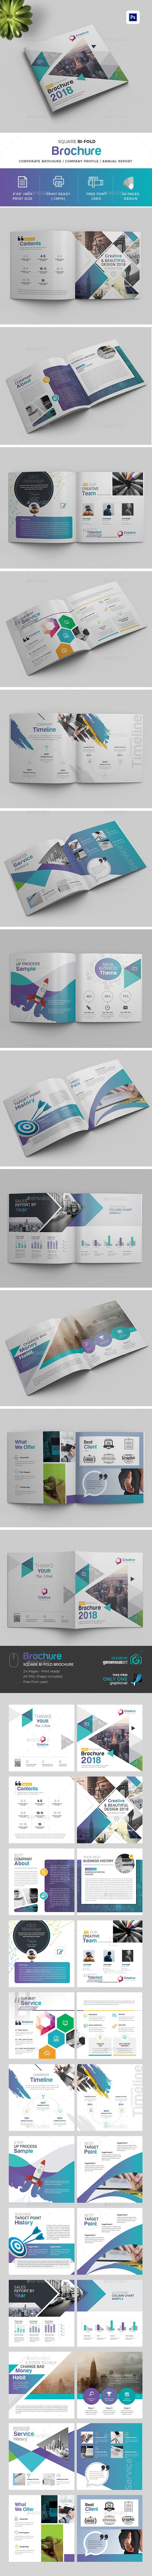 Square BiFold Brochure — Photoshop PSD #corporate #informational • Available here ➝ https://graphicriver.net/item/square-bifold-brochure/20917452?ref=pxcr